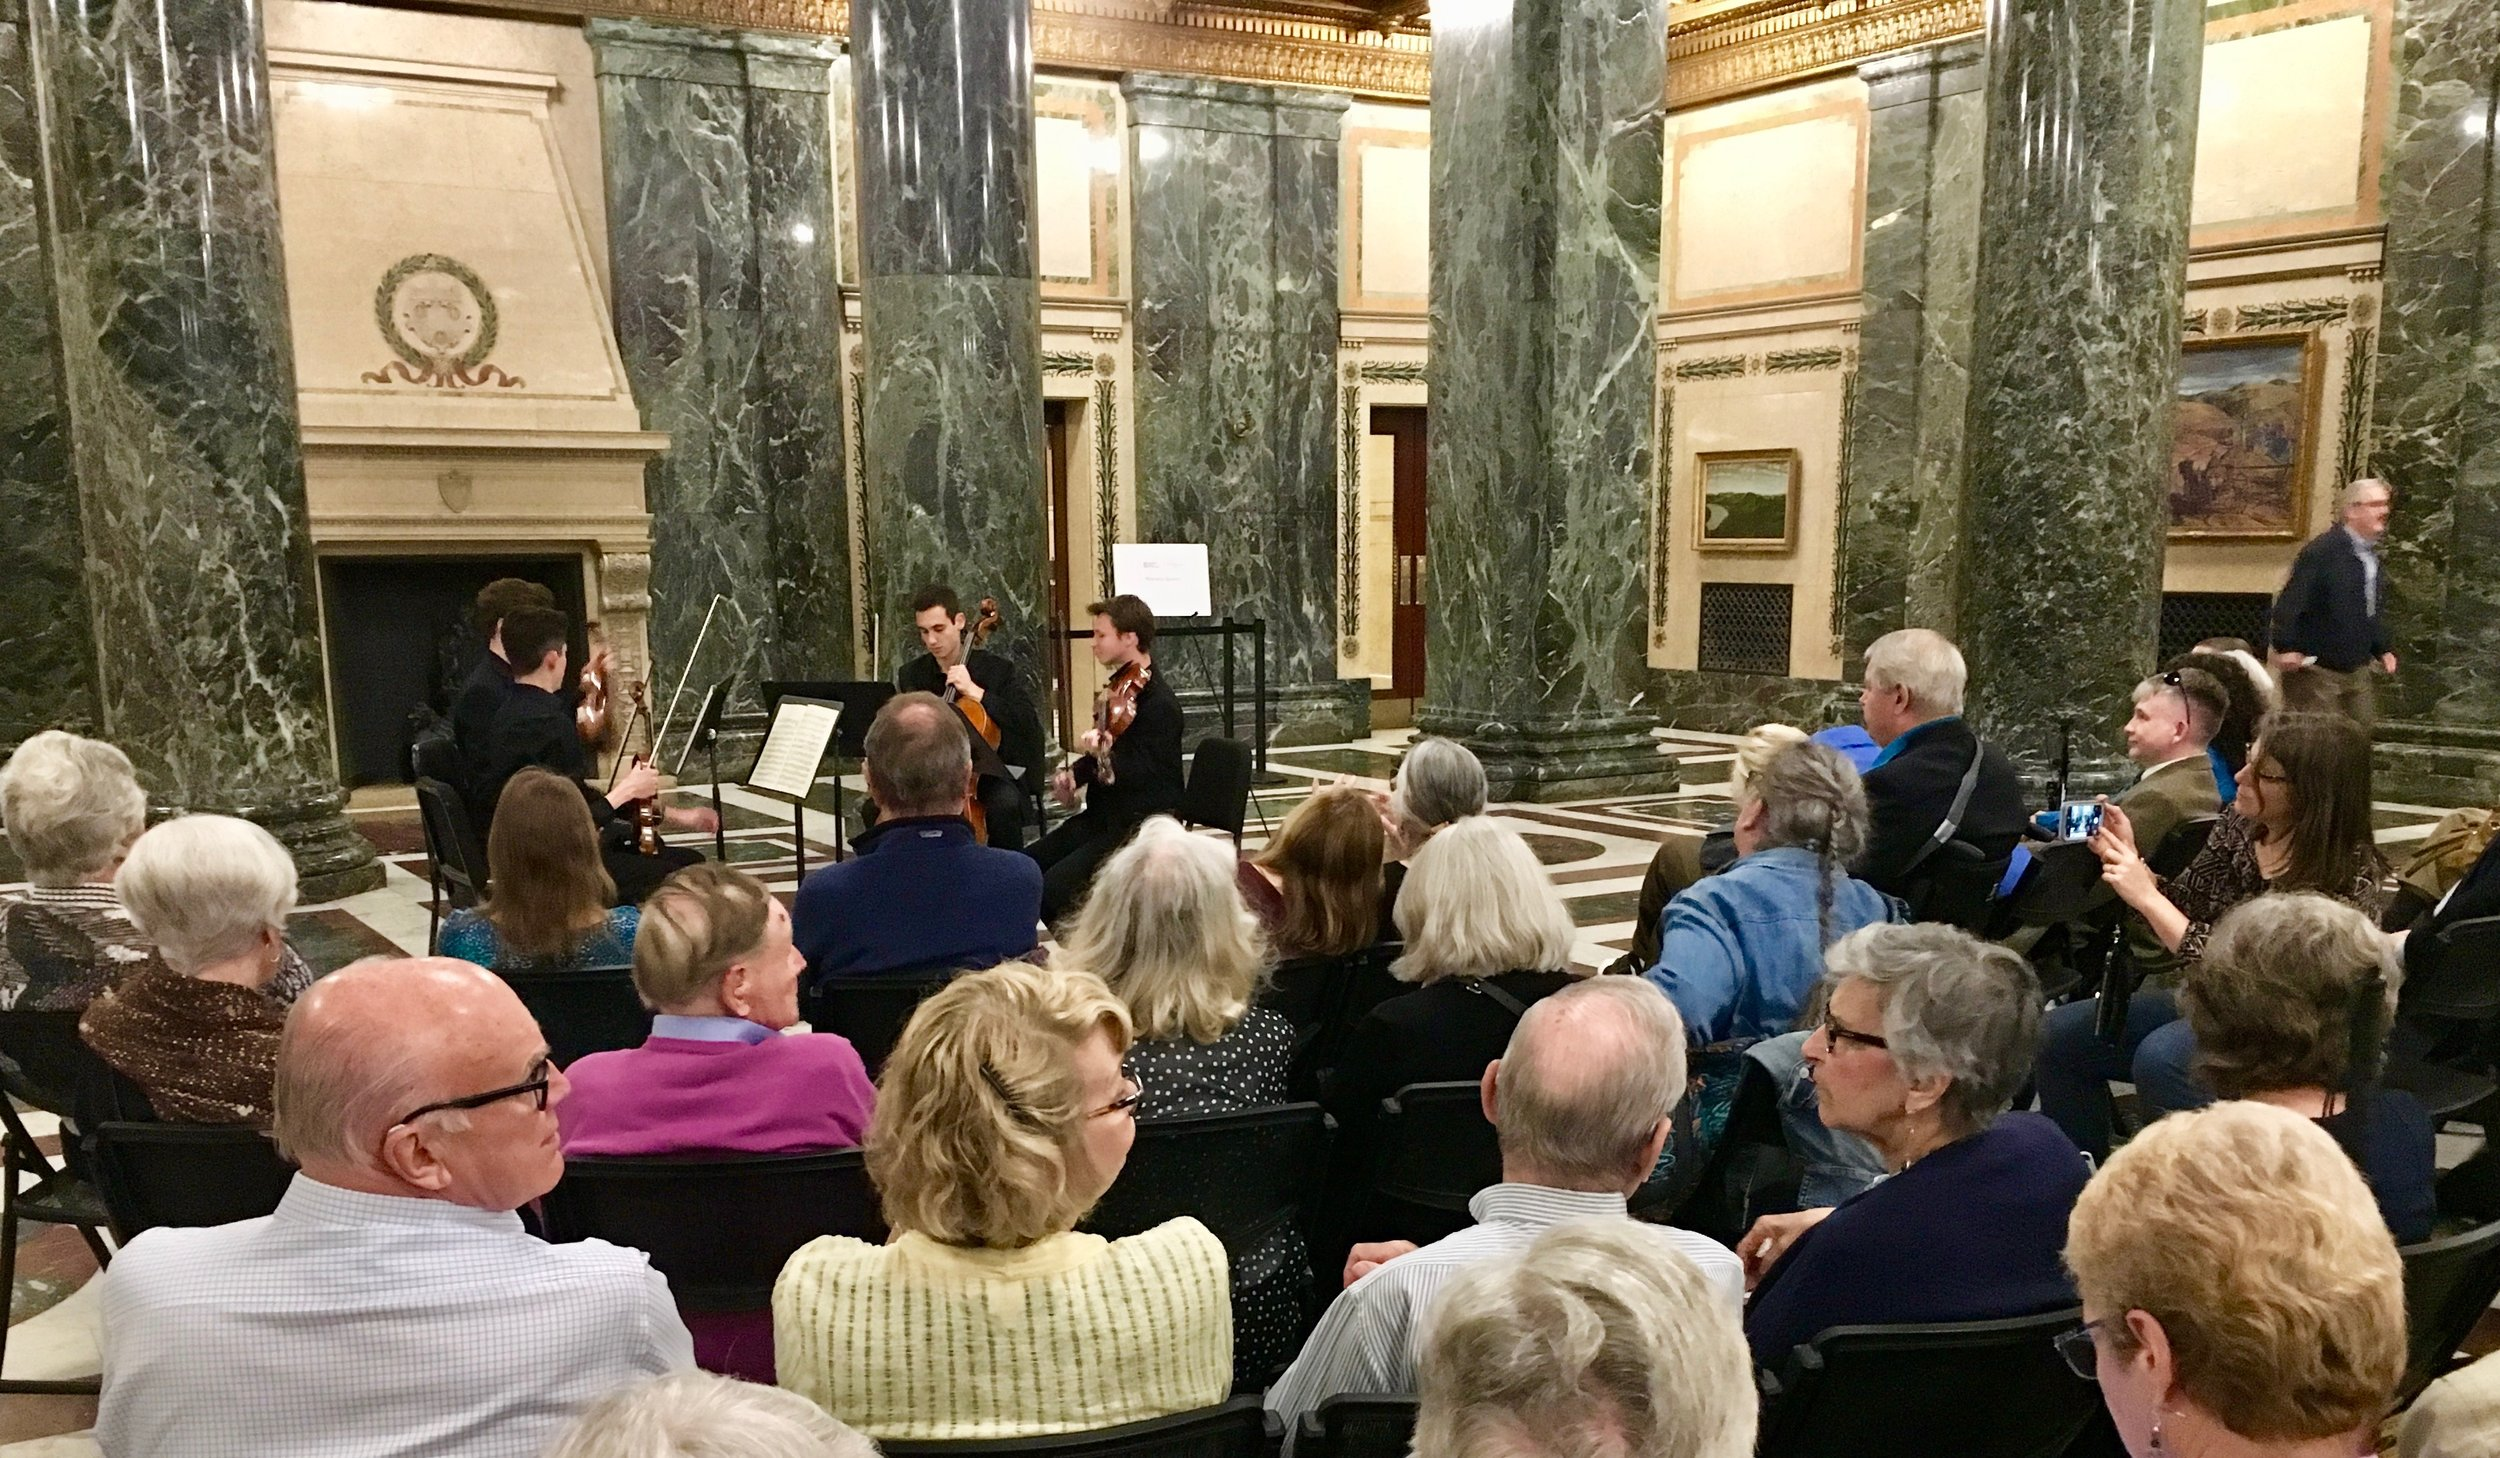 Chamber Music Pittsburgh - Monday, May 6, 2019The Mercurial Quartet - Charlie, Zach, Felix, and Noah - performed in the foyer of Carnegie Music Hall before a Chamber Music Pittsburgh recital featuring former PSO Concertmaster Noah Bendix-Balgley.